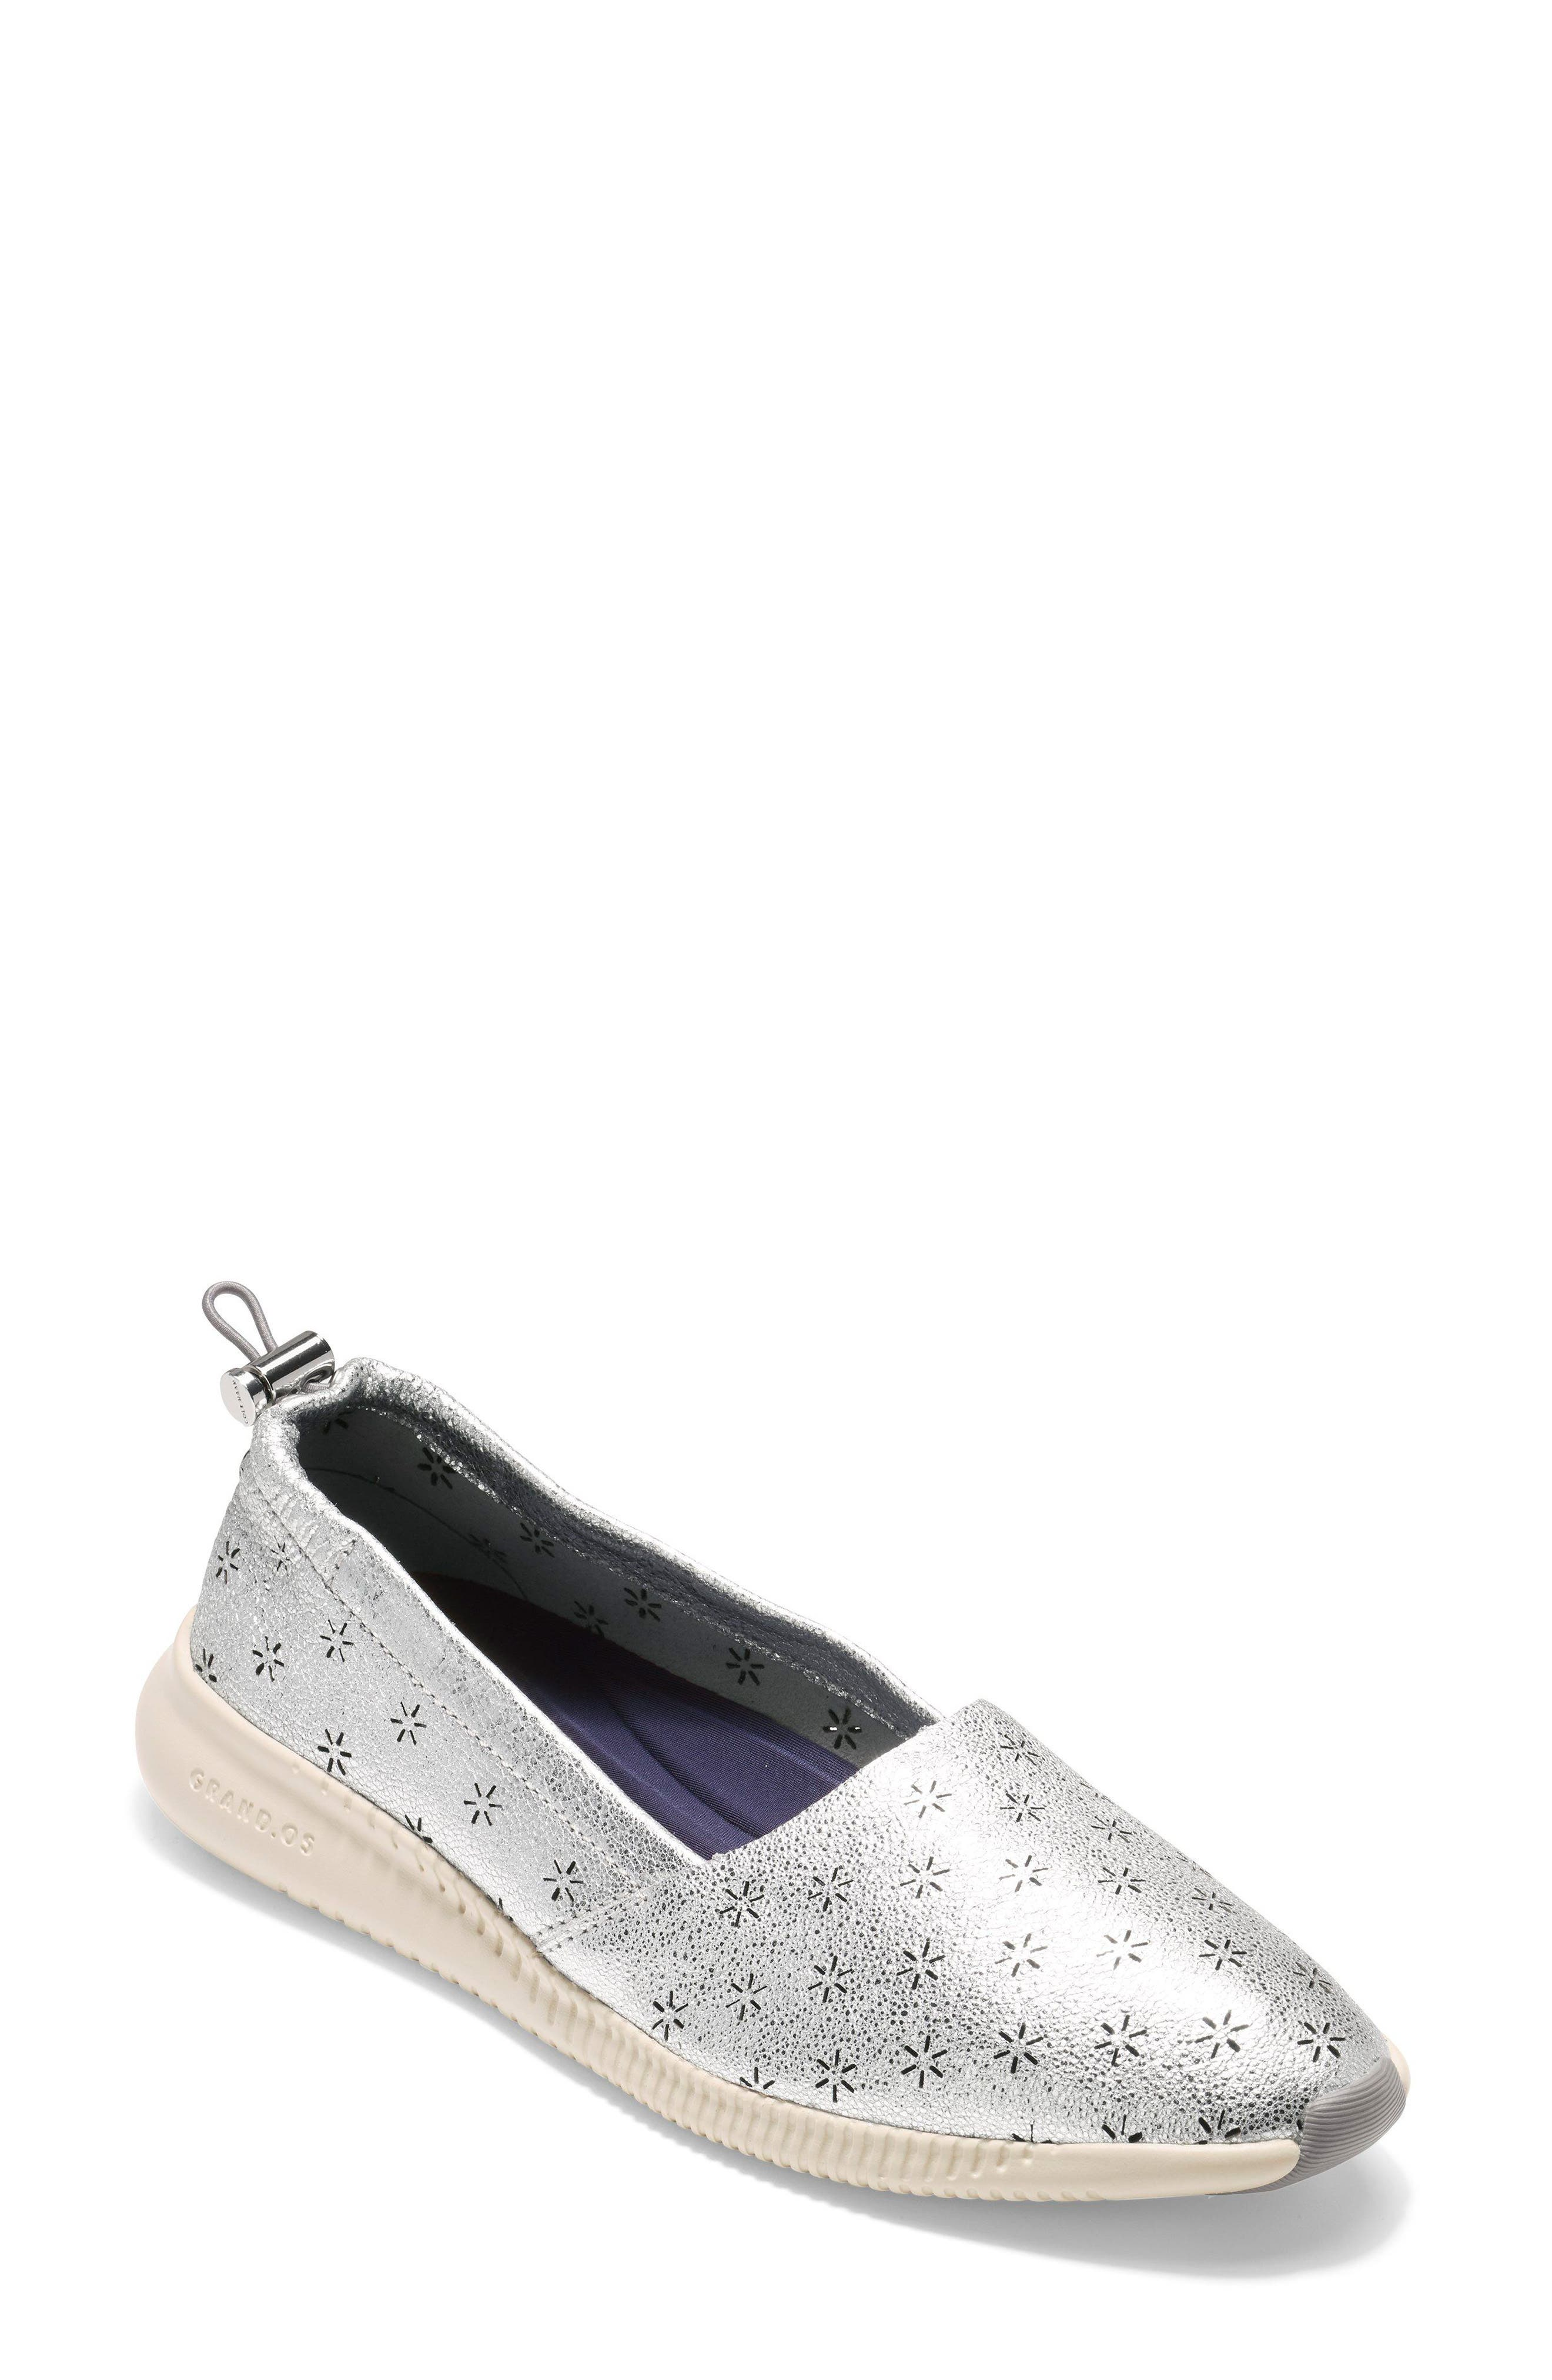 Studiogrand Perforated Slip-on,                         Main,                         color, SILVER LEATHER